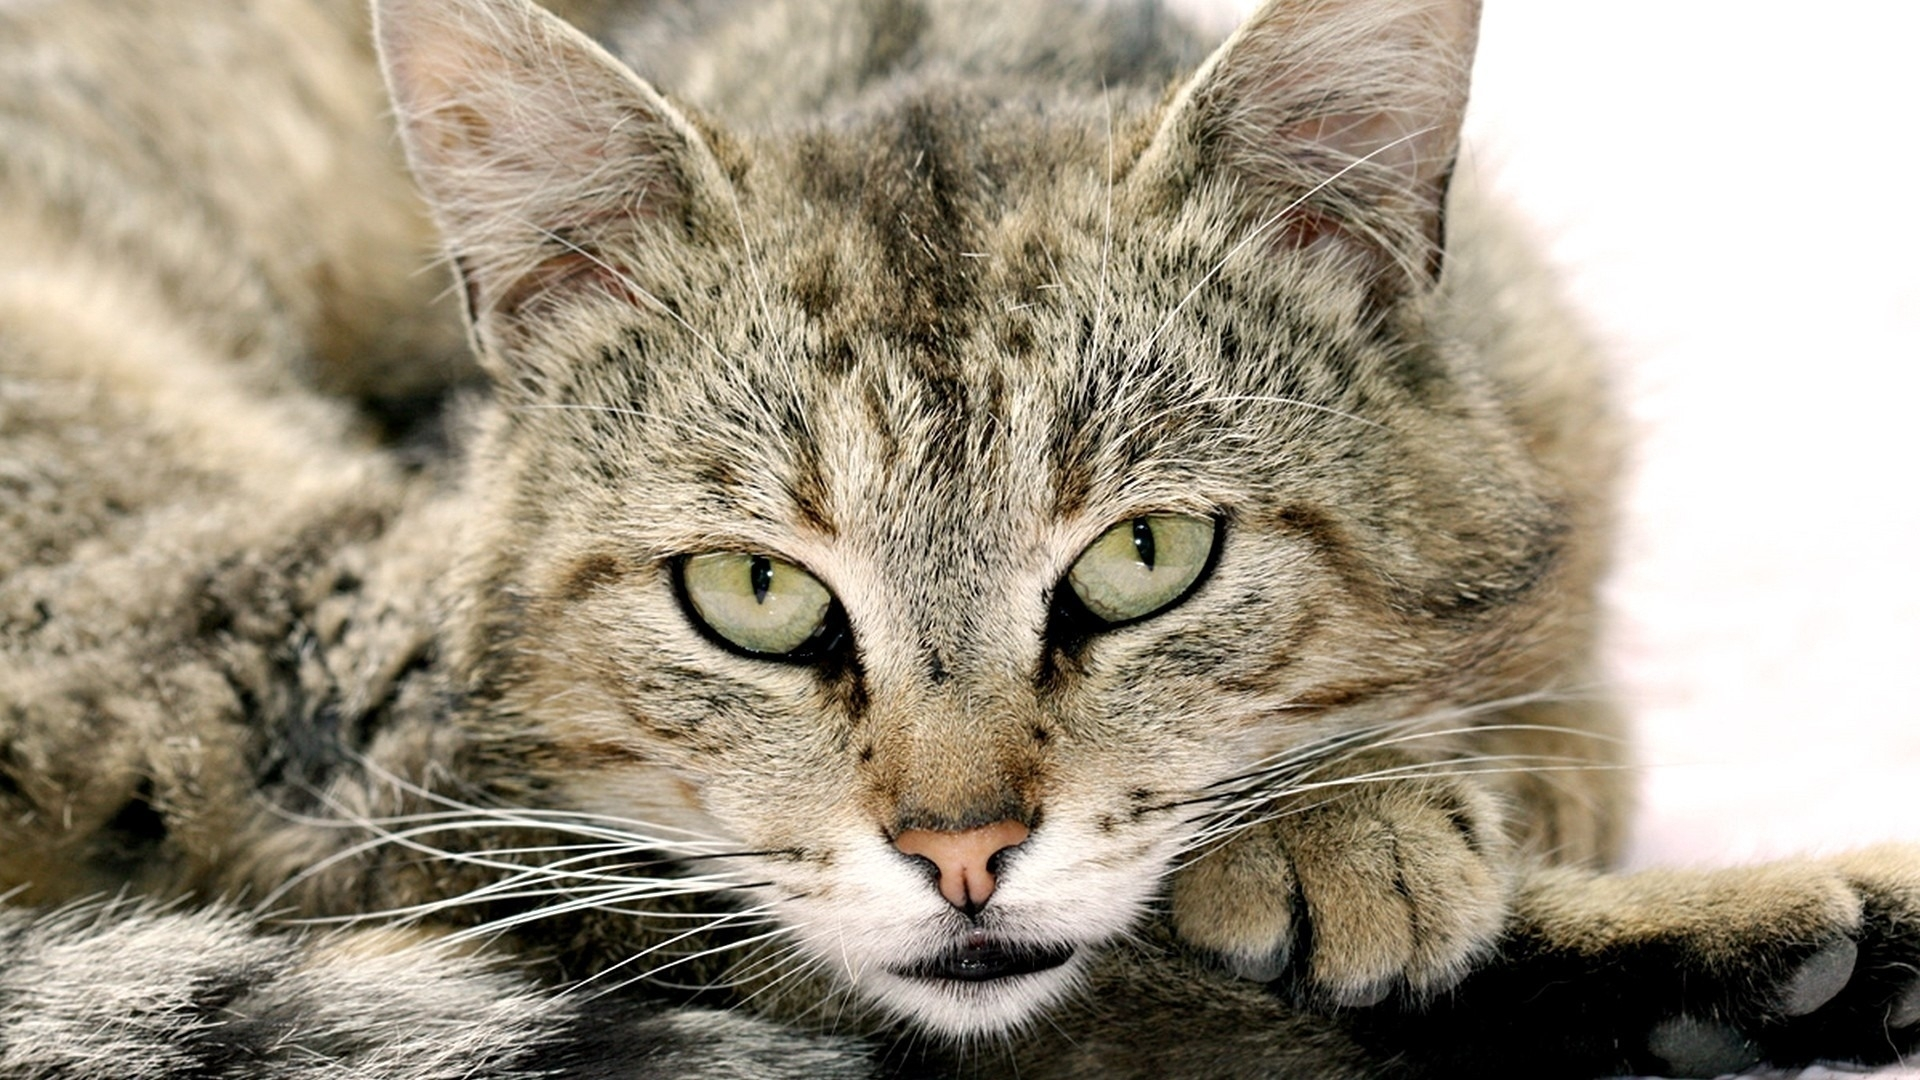 50261 download wallpaper Animals, Cats screensavers and pictures for free